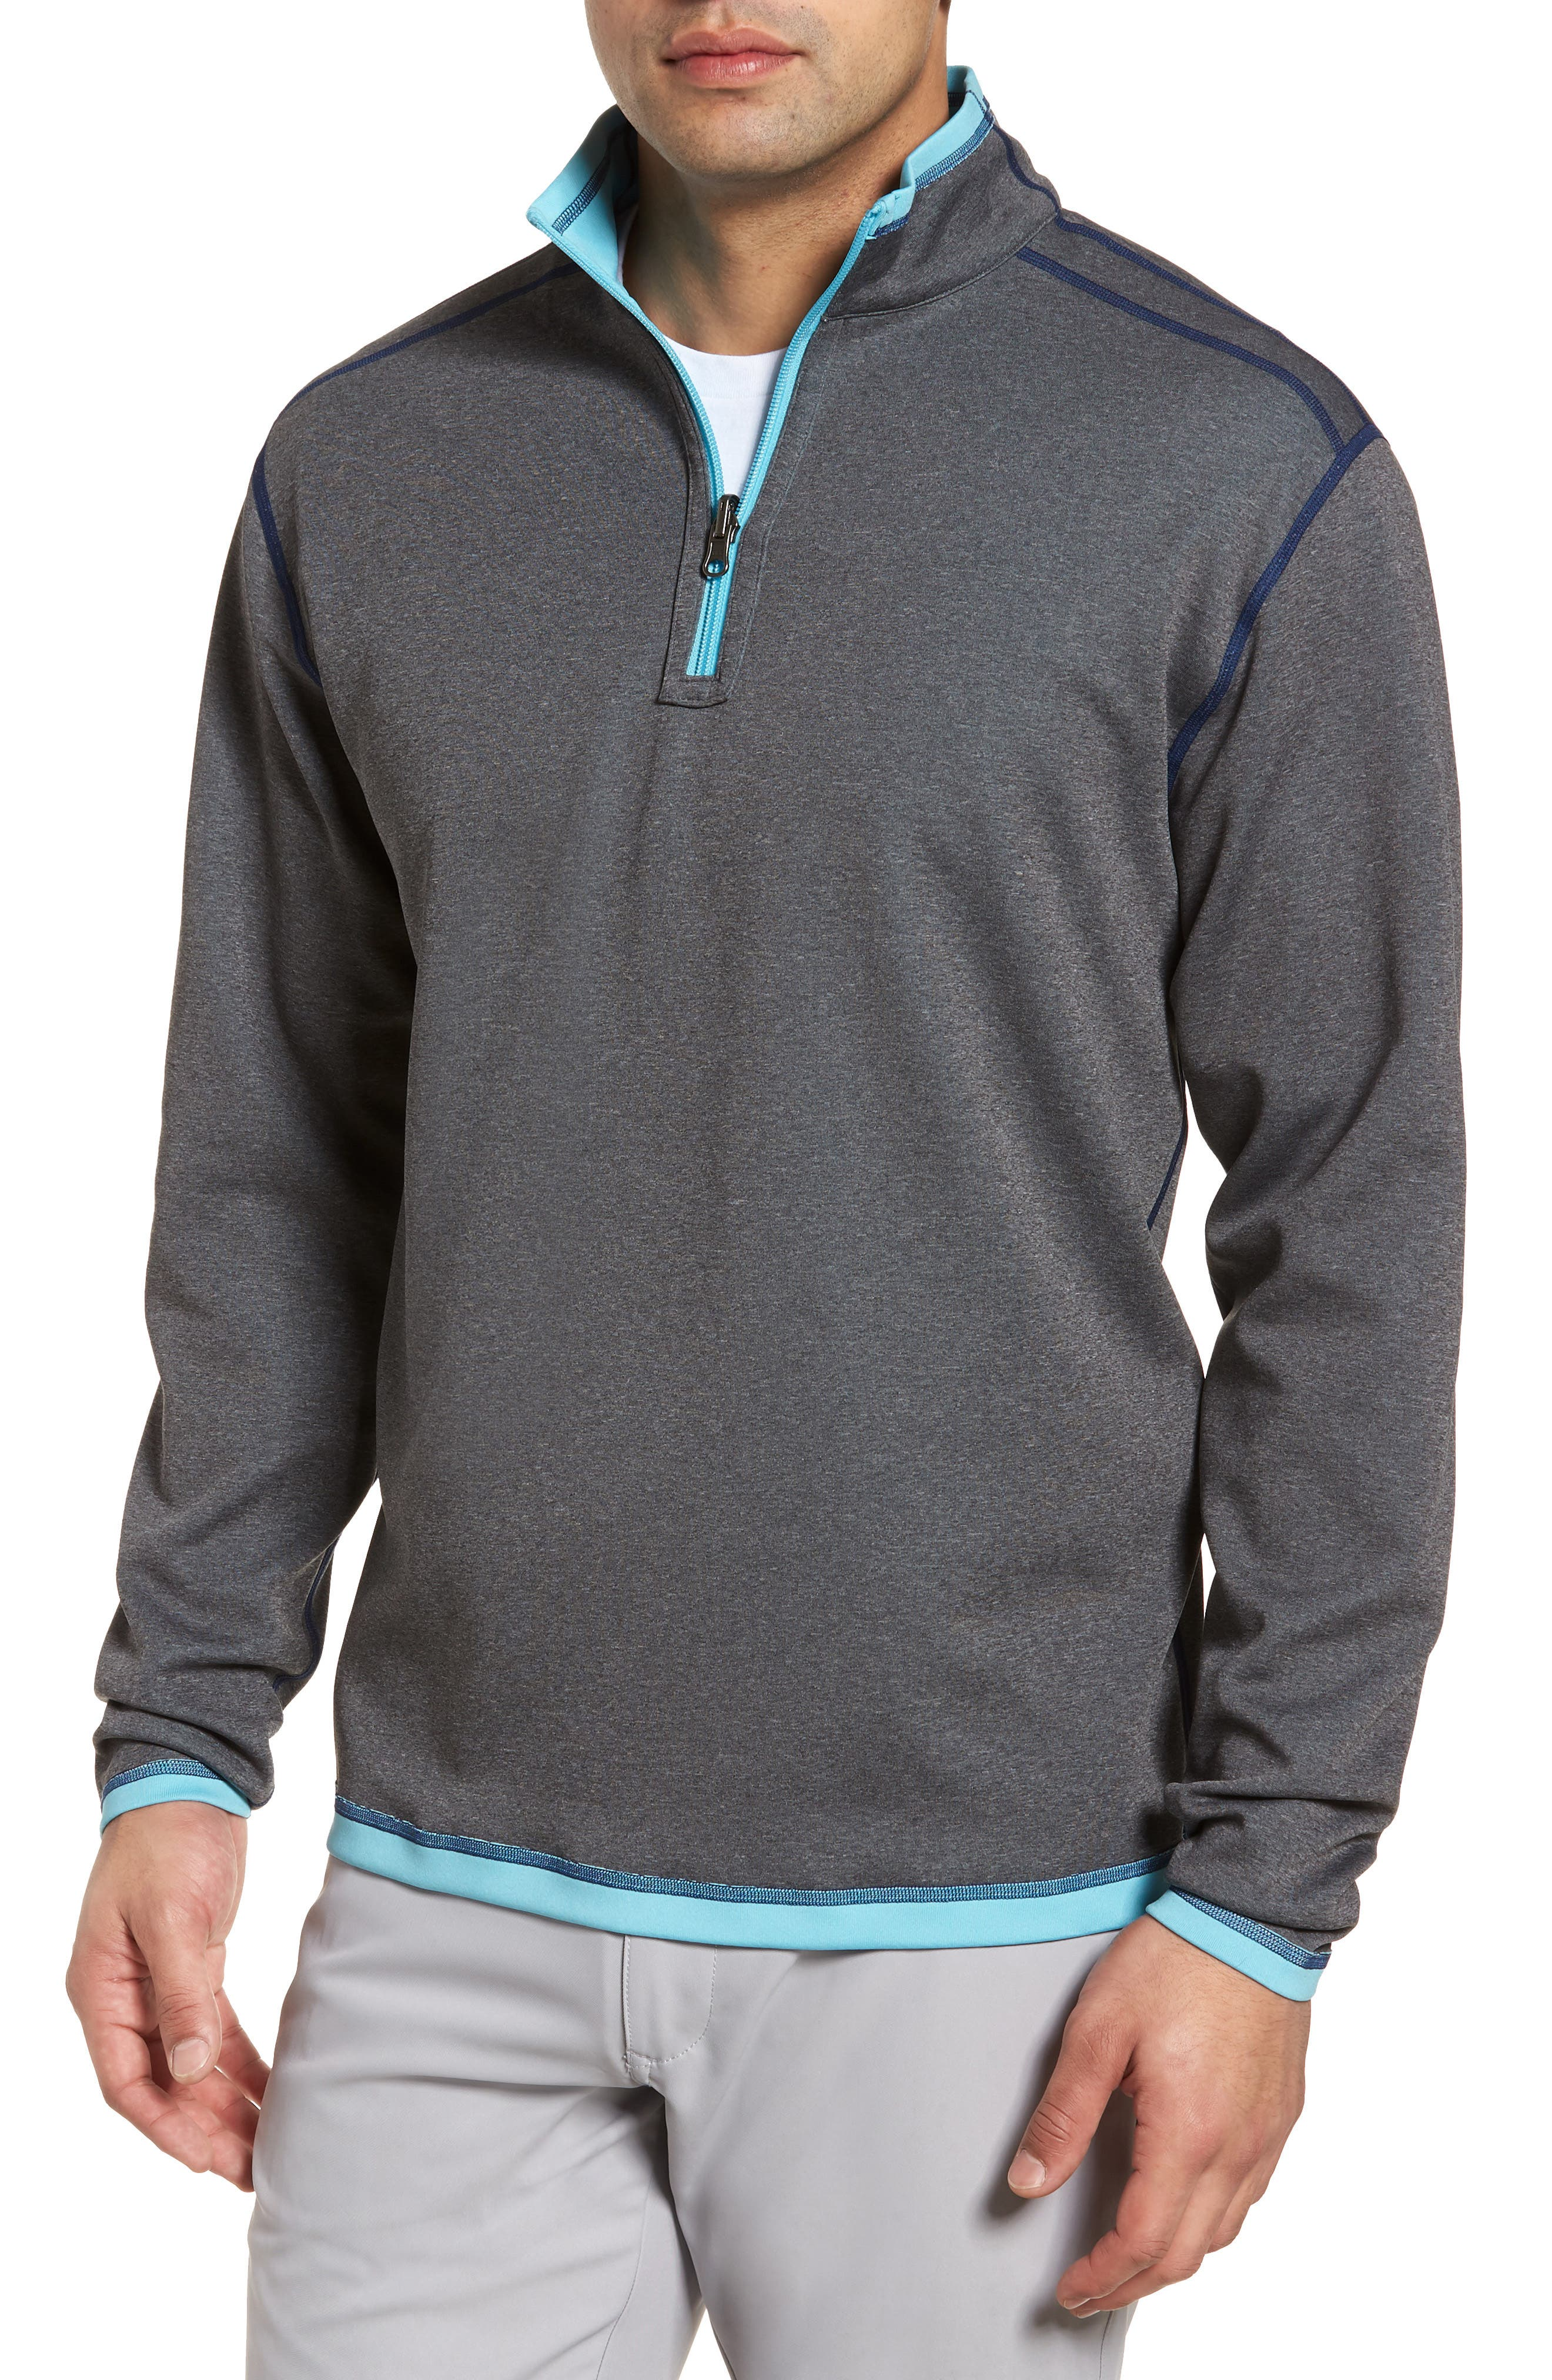 Alternate Image 3  - Cutter & Buck Evergreen Classic Fit DryTec Reversible Half Zip Pullover